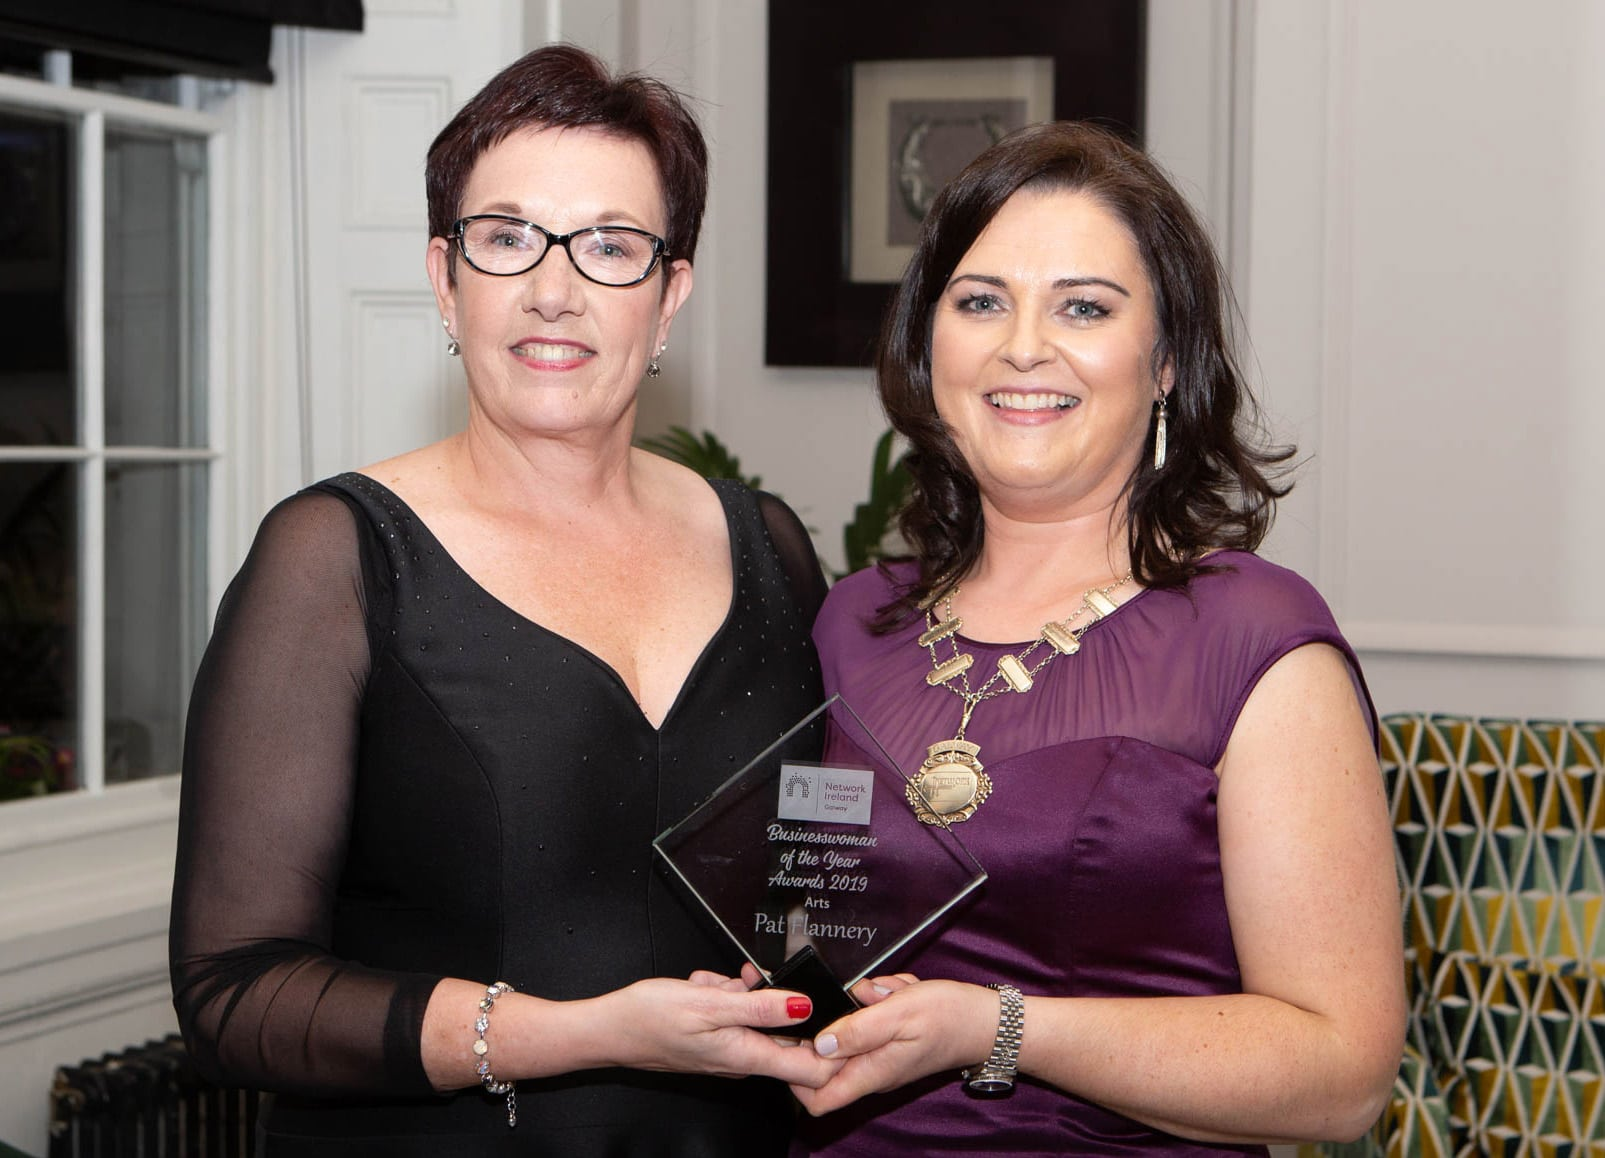 Pat Flannery Receiving Business Woman of the Year Award in Arts Category from President of Network Galway Ireland.jpeg